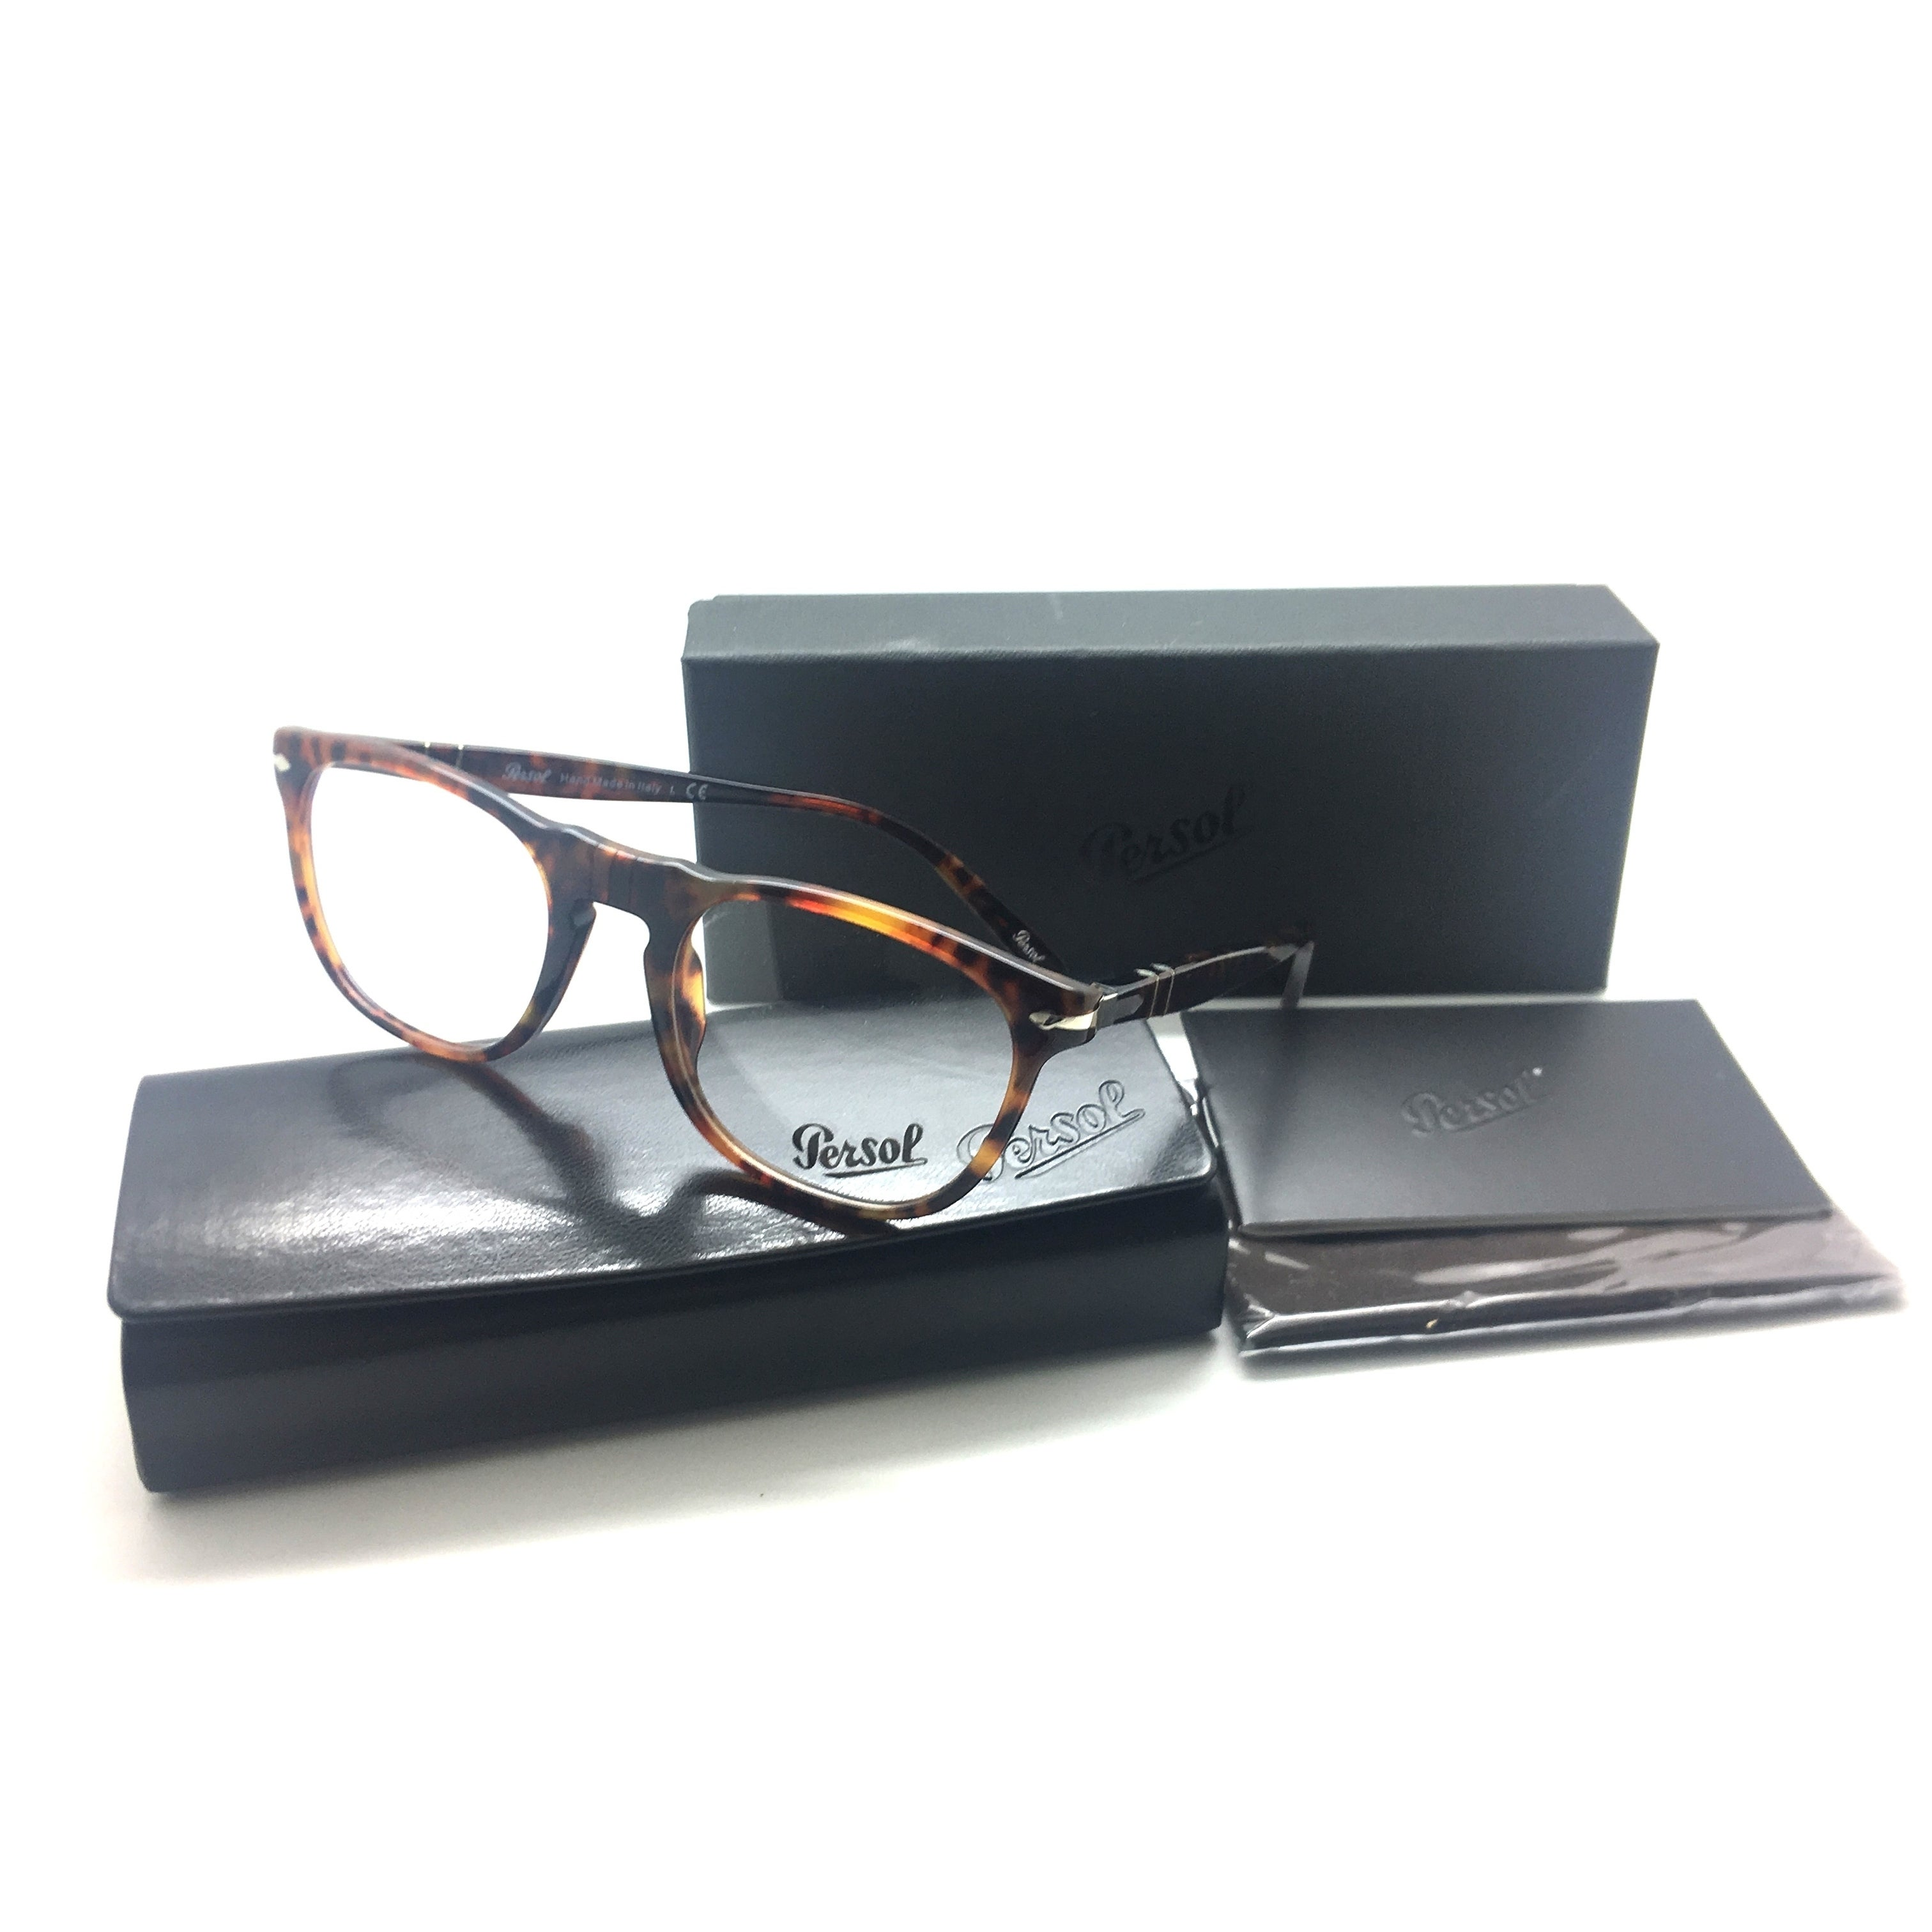 73aef299f91 Shop Persol Round Tortoise Eyeglasses Frame 50MM 2996 V 108 Caffe - Free  Shipping Today - Overstock - 22889439